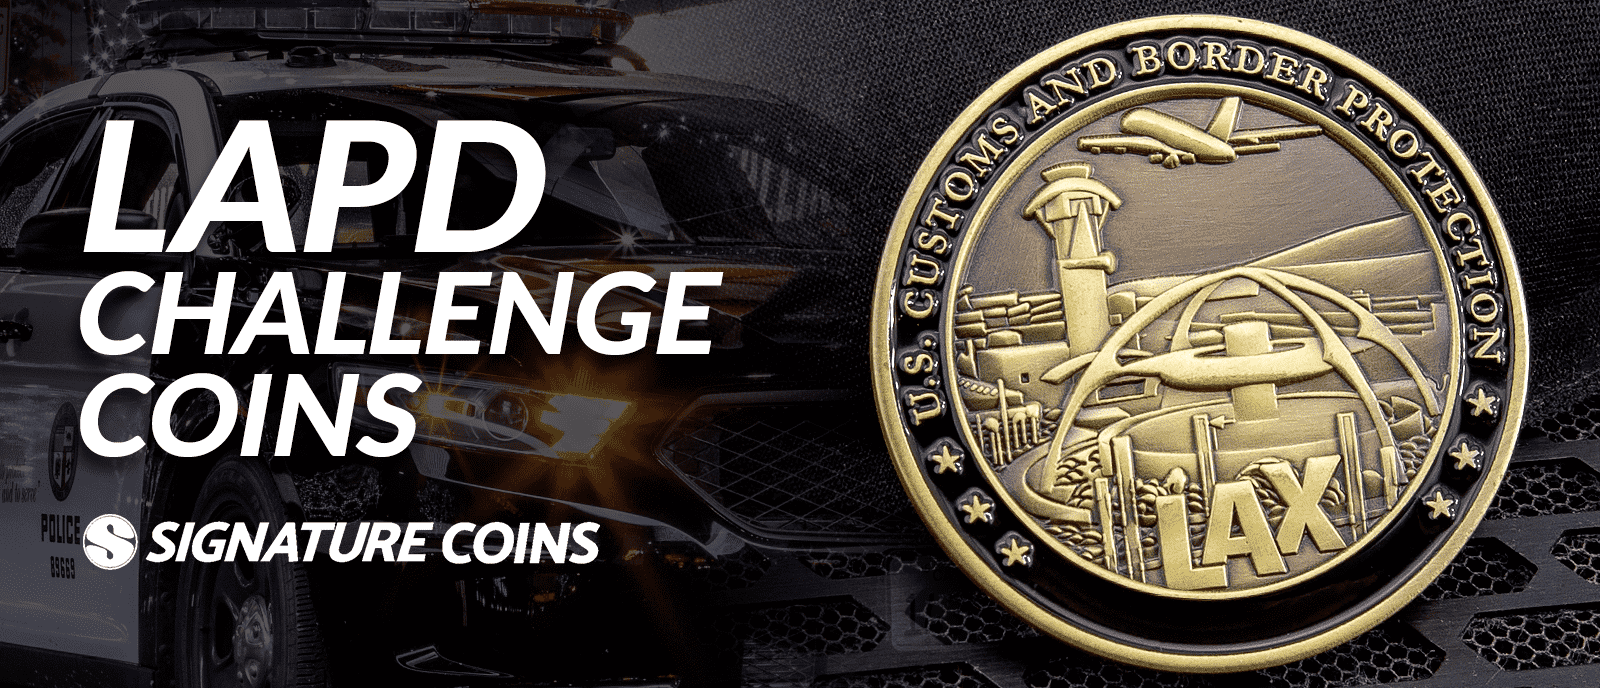 LOS ANGELES POLICE DEPT AIR SUPPORT DIVISION CHALLENGE COIN